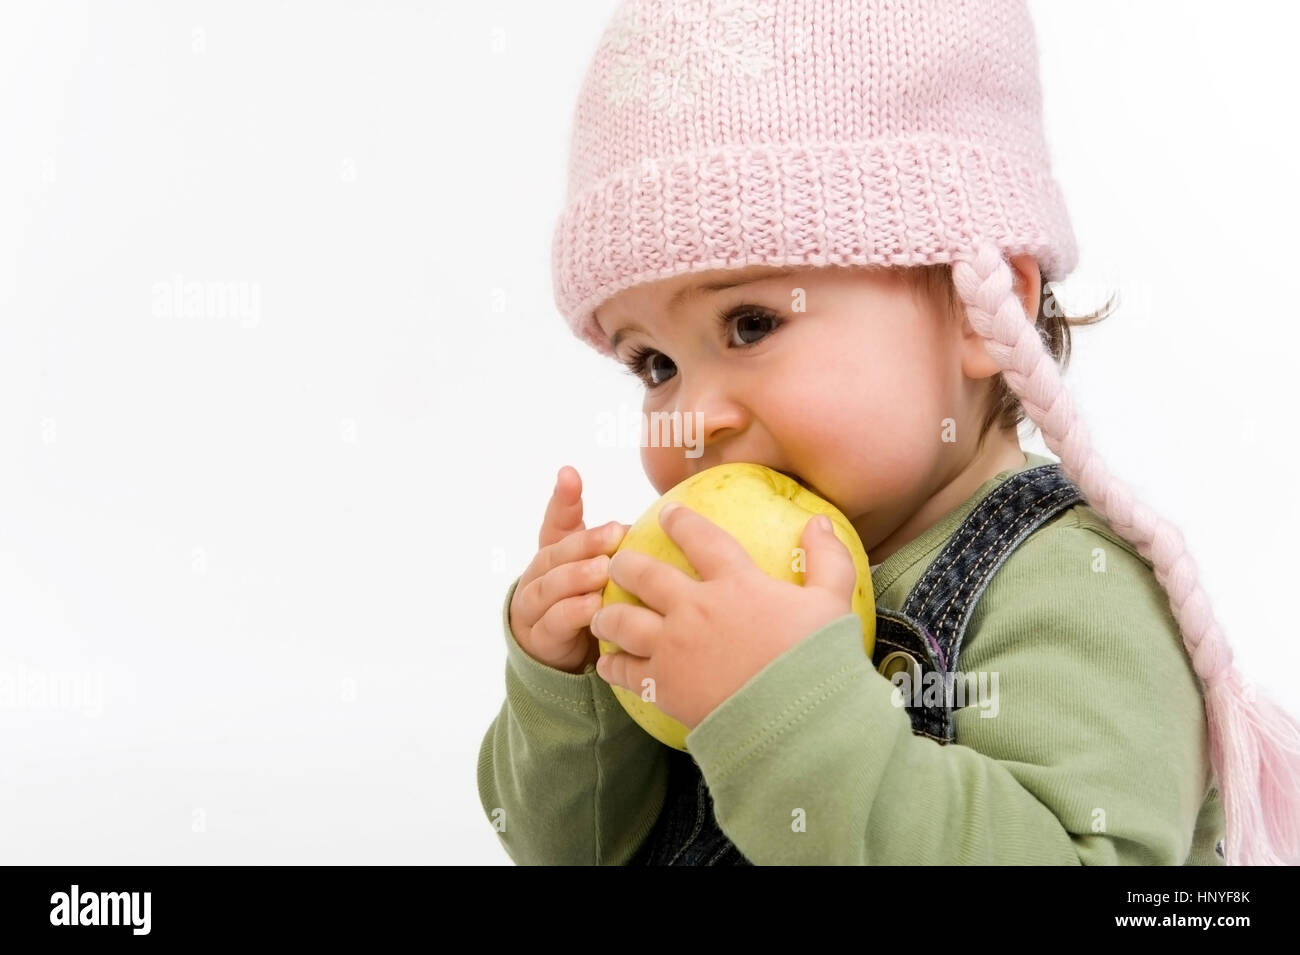 little child eats apple stock photos little child eats apple stock images alamy. Black Bedroom Furniture Sets. Home Design Ideas